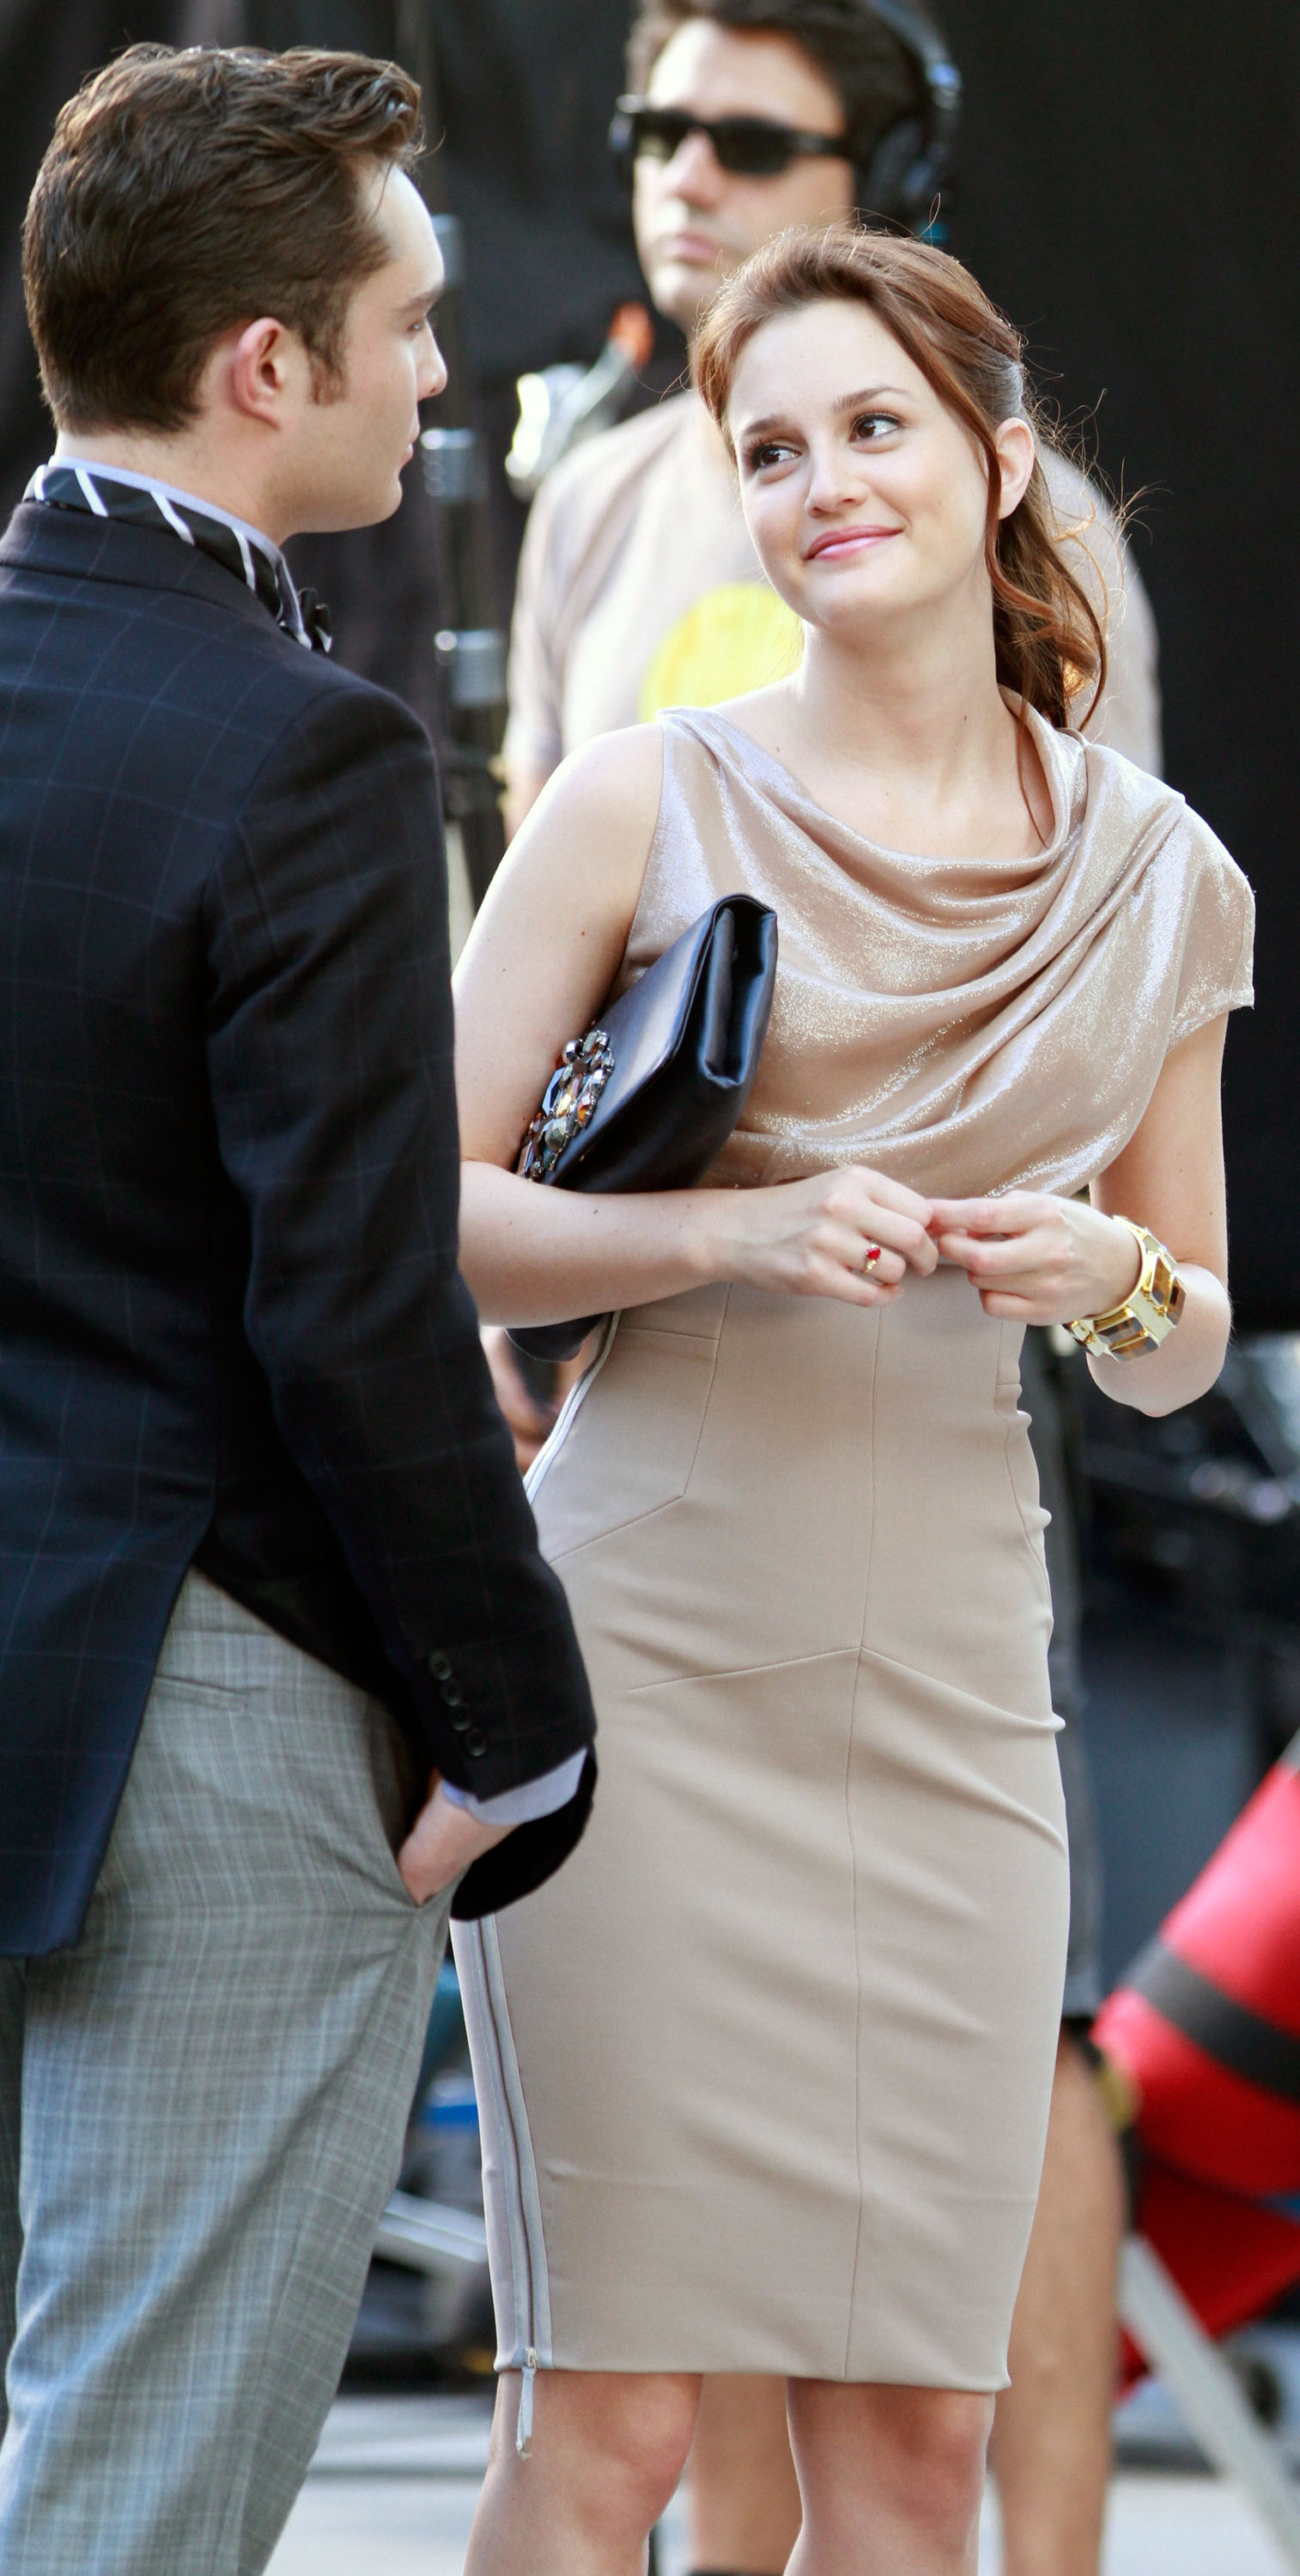 Leighton Meester and Ed Westwick shared a well-dressed scene in August 2010.